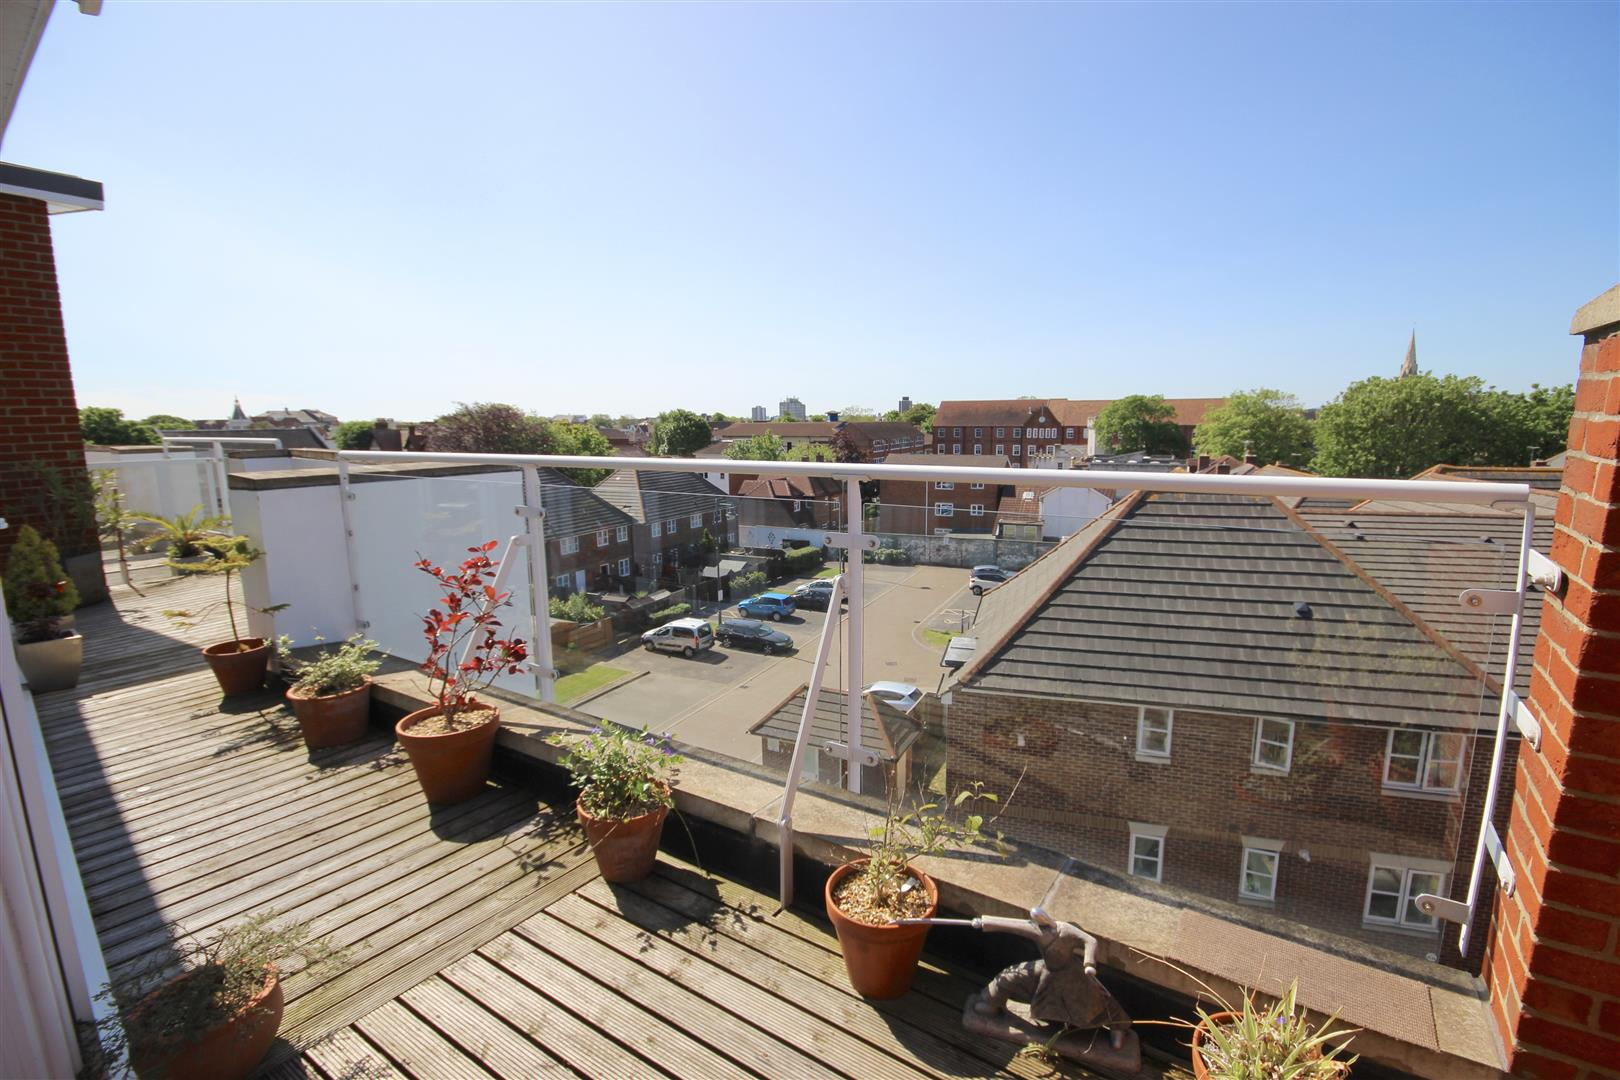 2 Bedrooms Penthouse Flat for sale in Elm Grove, SOUTHSEA, Portsmouth, Hampshire